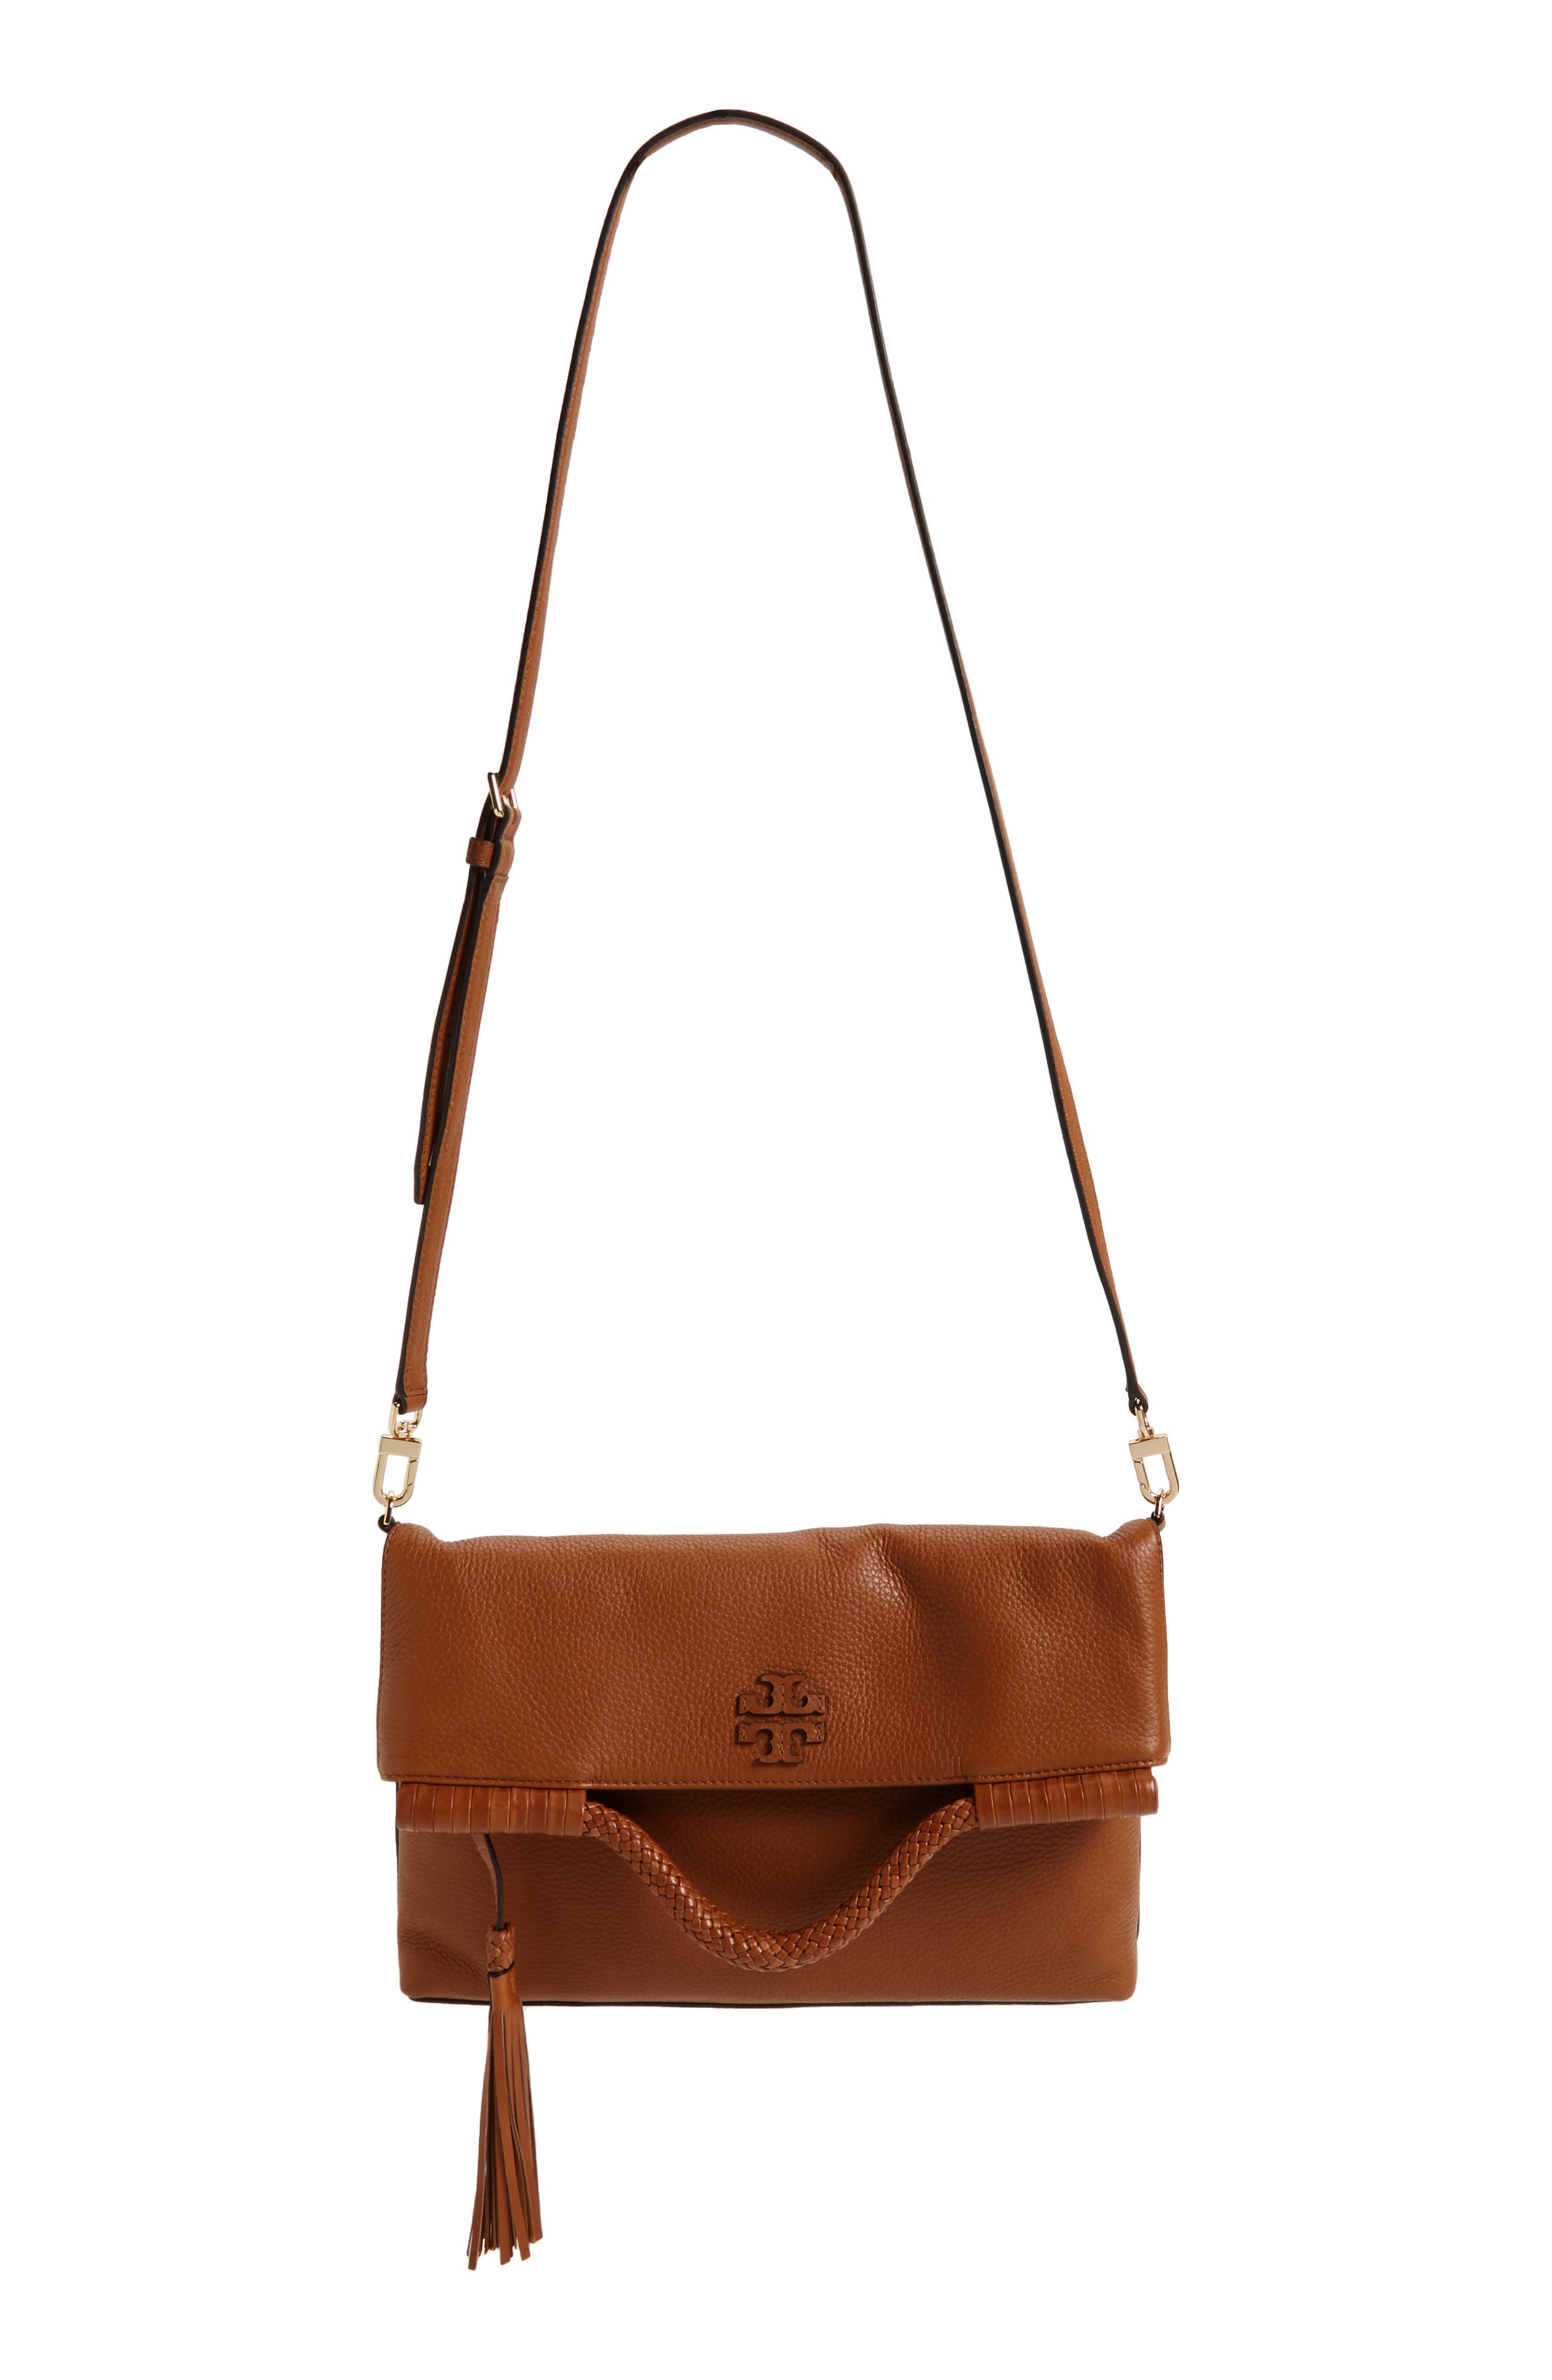 Convertible Leather Crossbody Bag,                         Main,                         color, Saddle